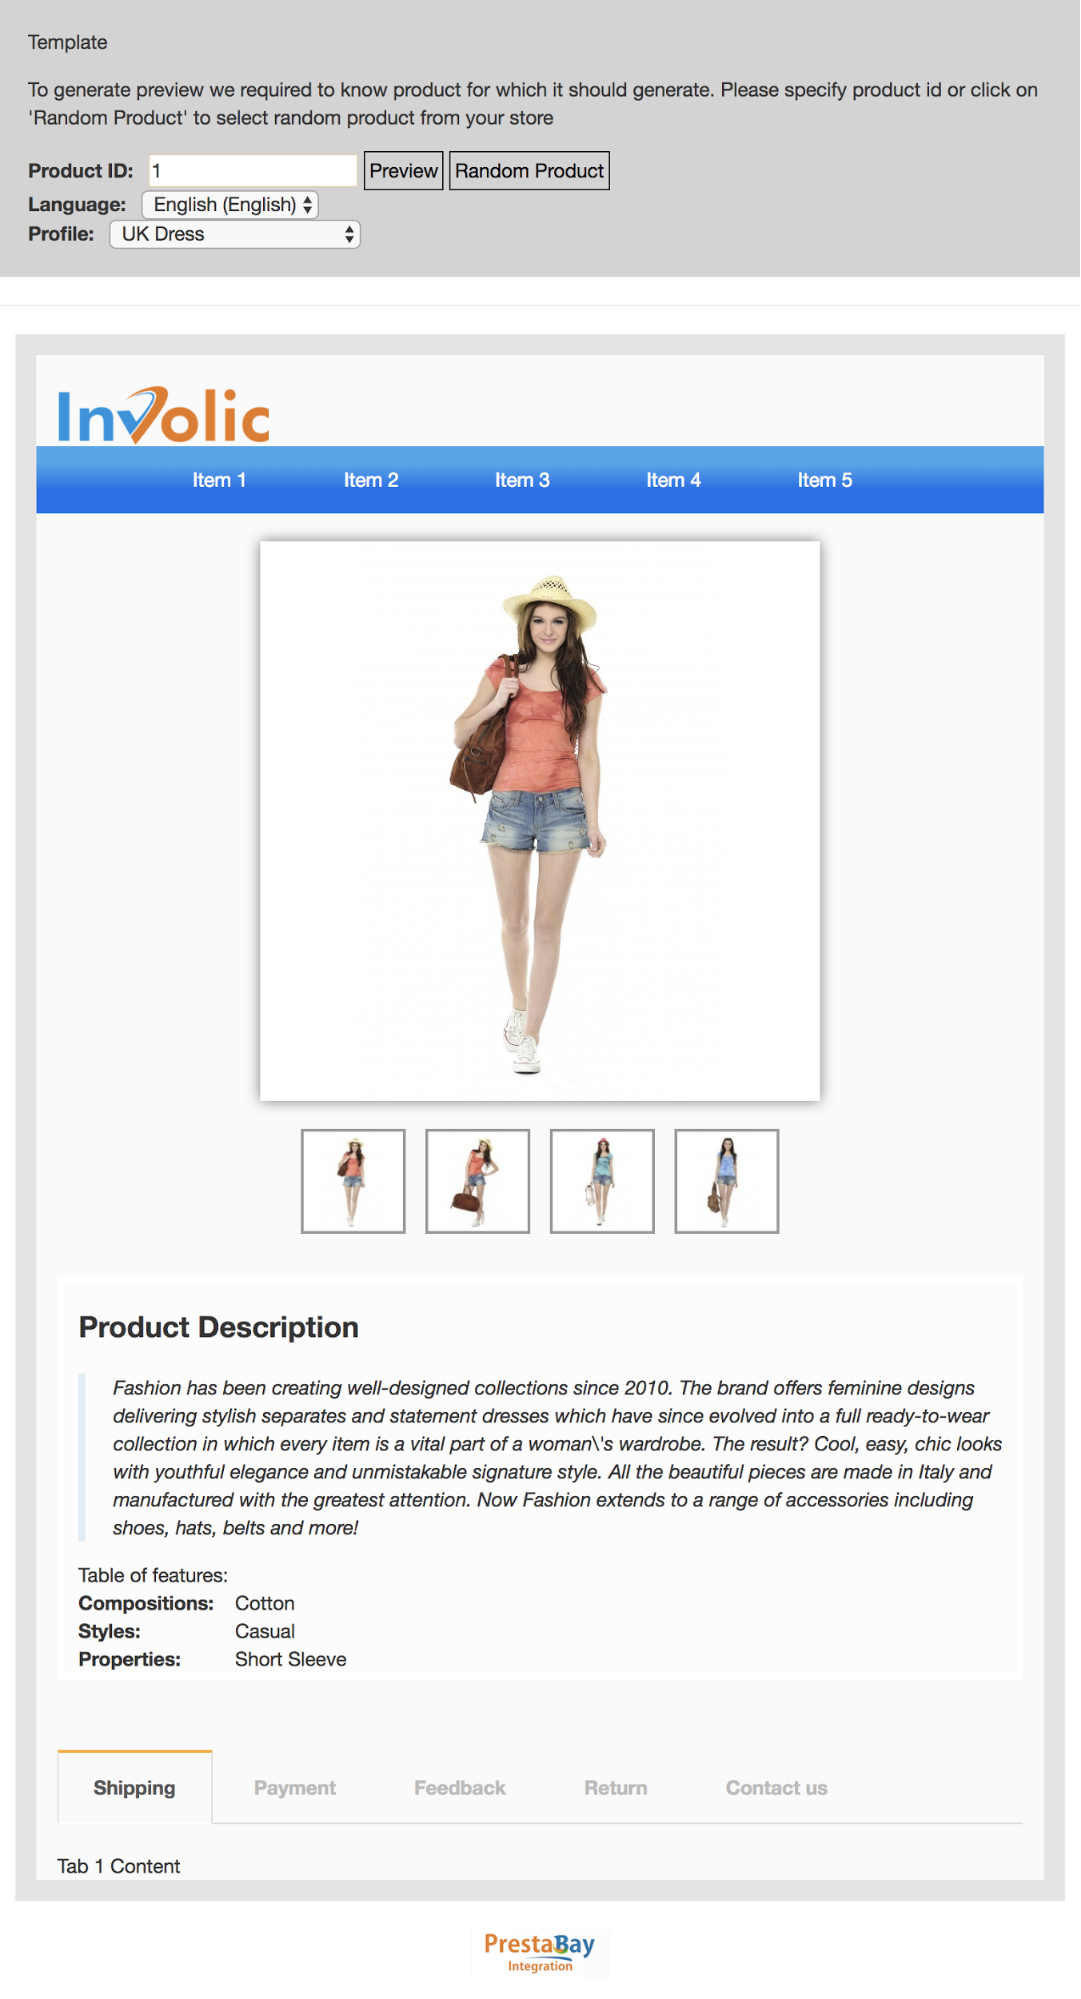 PrestaShop ebay module — Preview Description Template